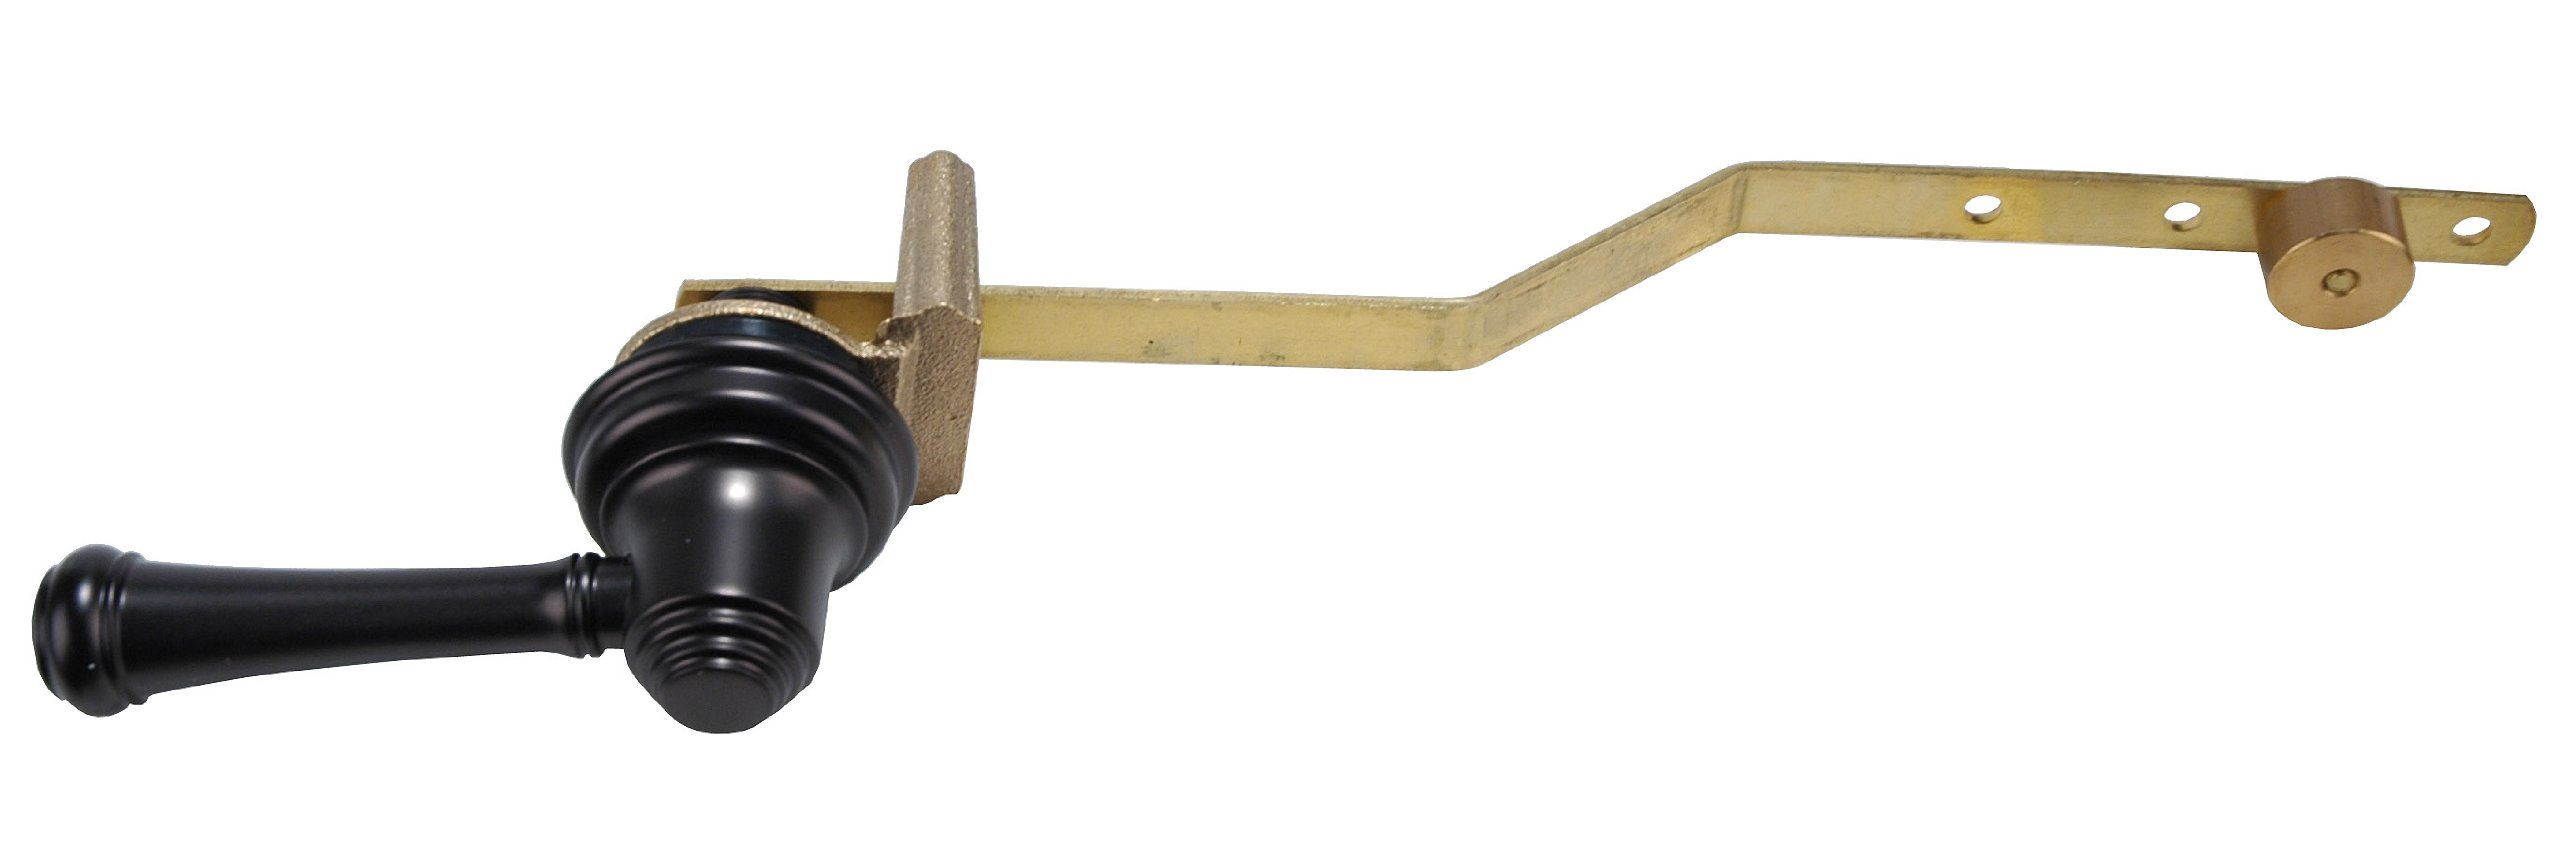 Toilet Tank Lever, Frontal Mount, Oil Rubbed Bronze - By Plumb USA